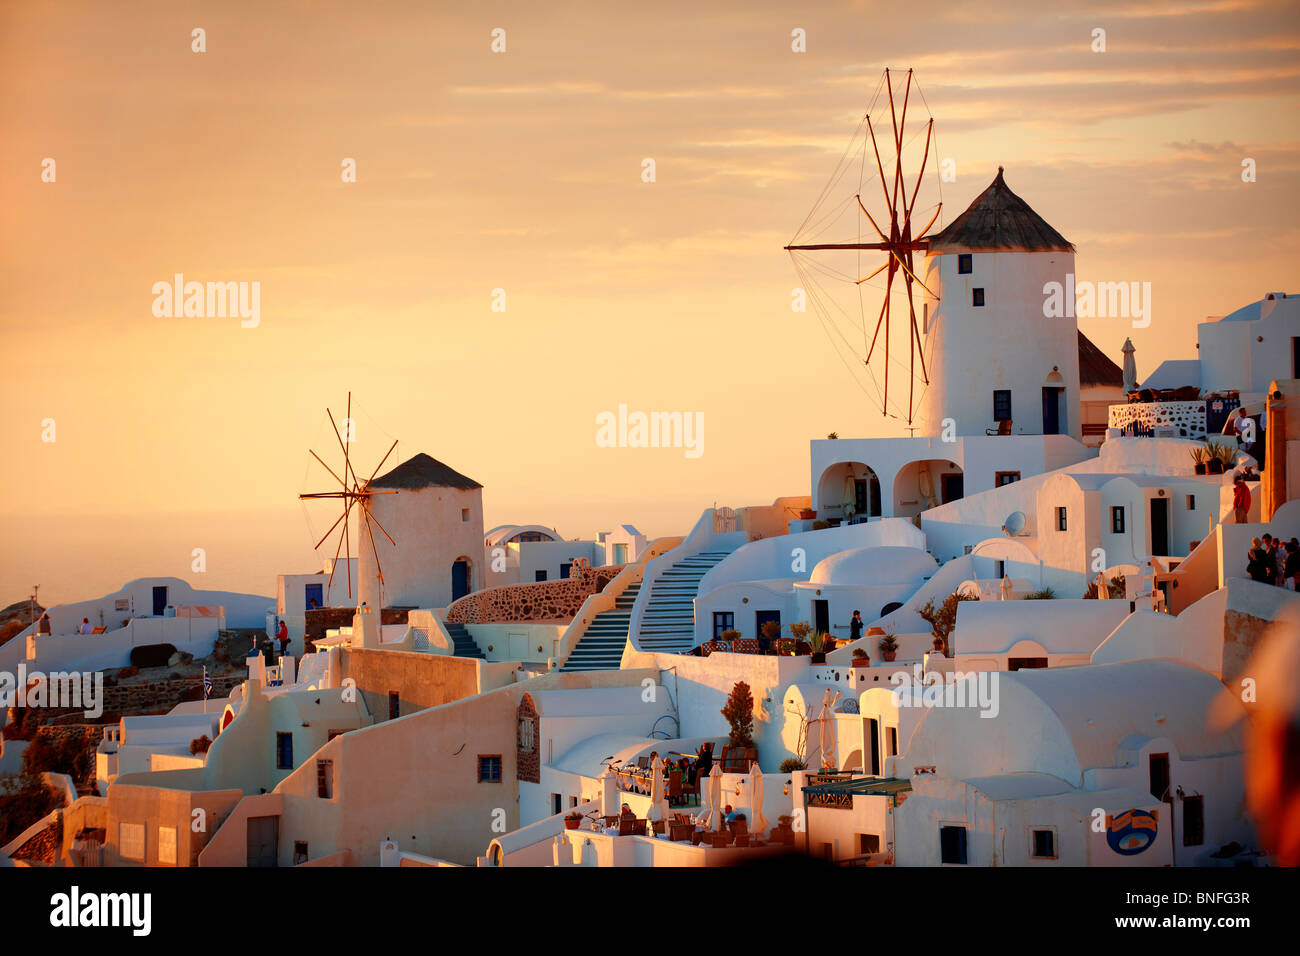 Oia ( Ia ) Santorini - Windmills and town at sunset, Greek Cyclades islands - Photos, pictures and images - Stock Image